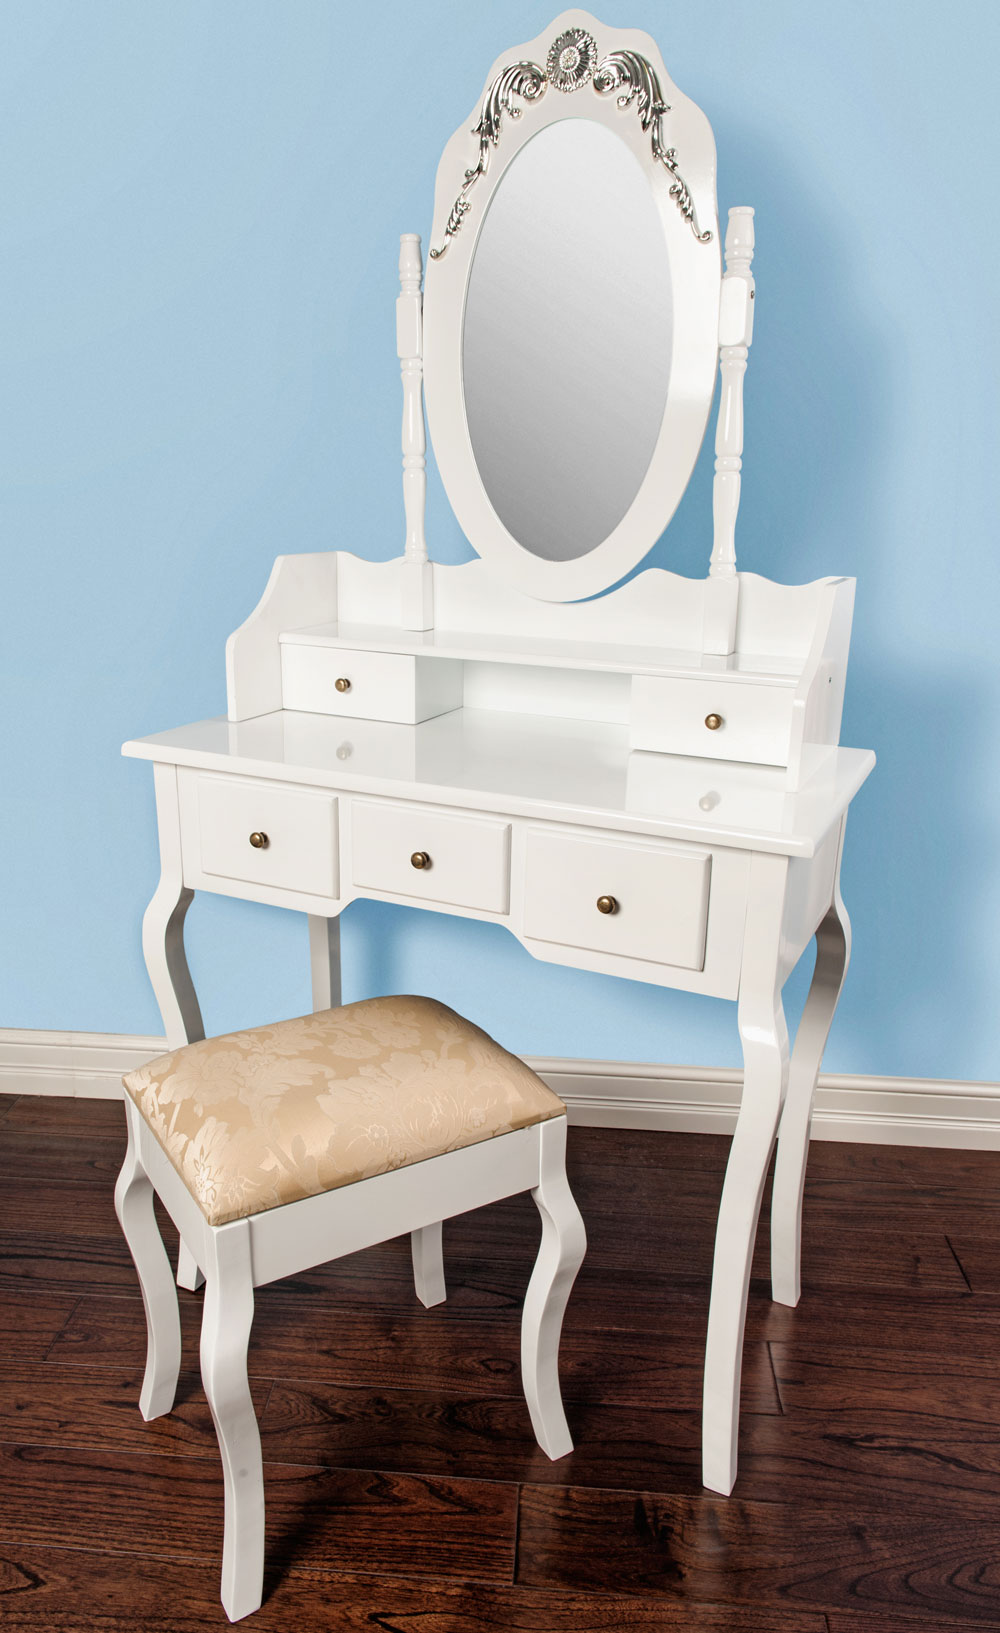 Dressing Table With Mirror And Stool: Luxembourg White Dressing Table Mirror Stool Set Bedroom 5